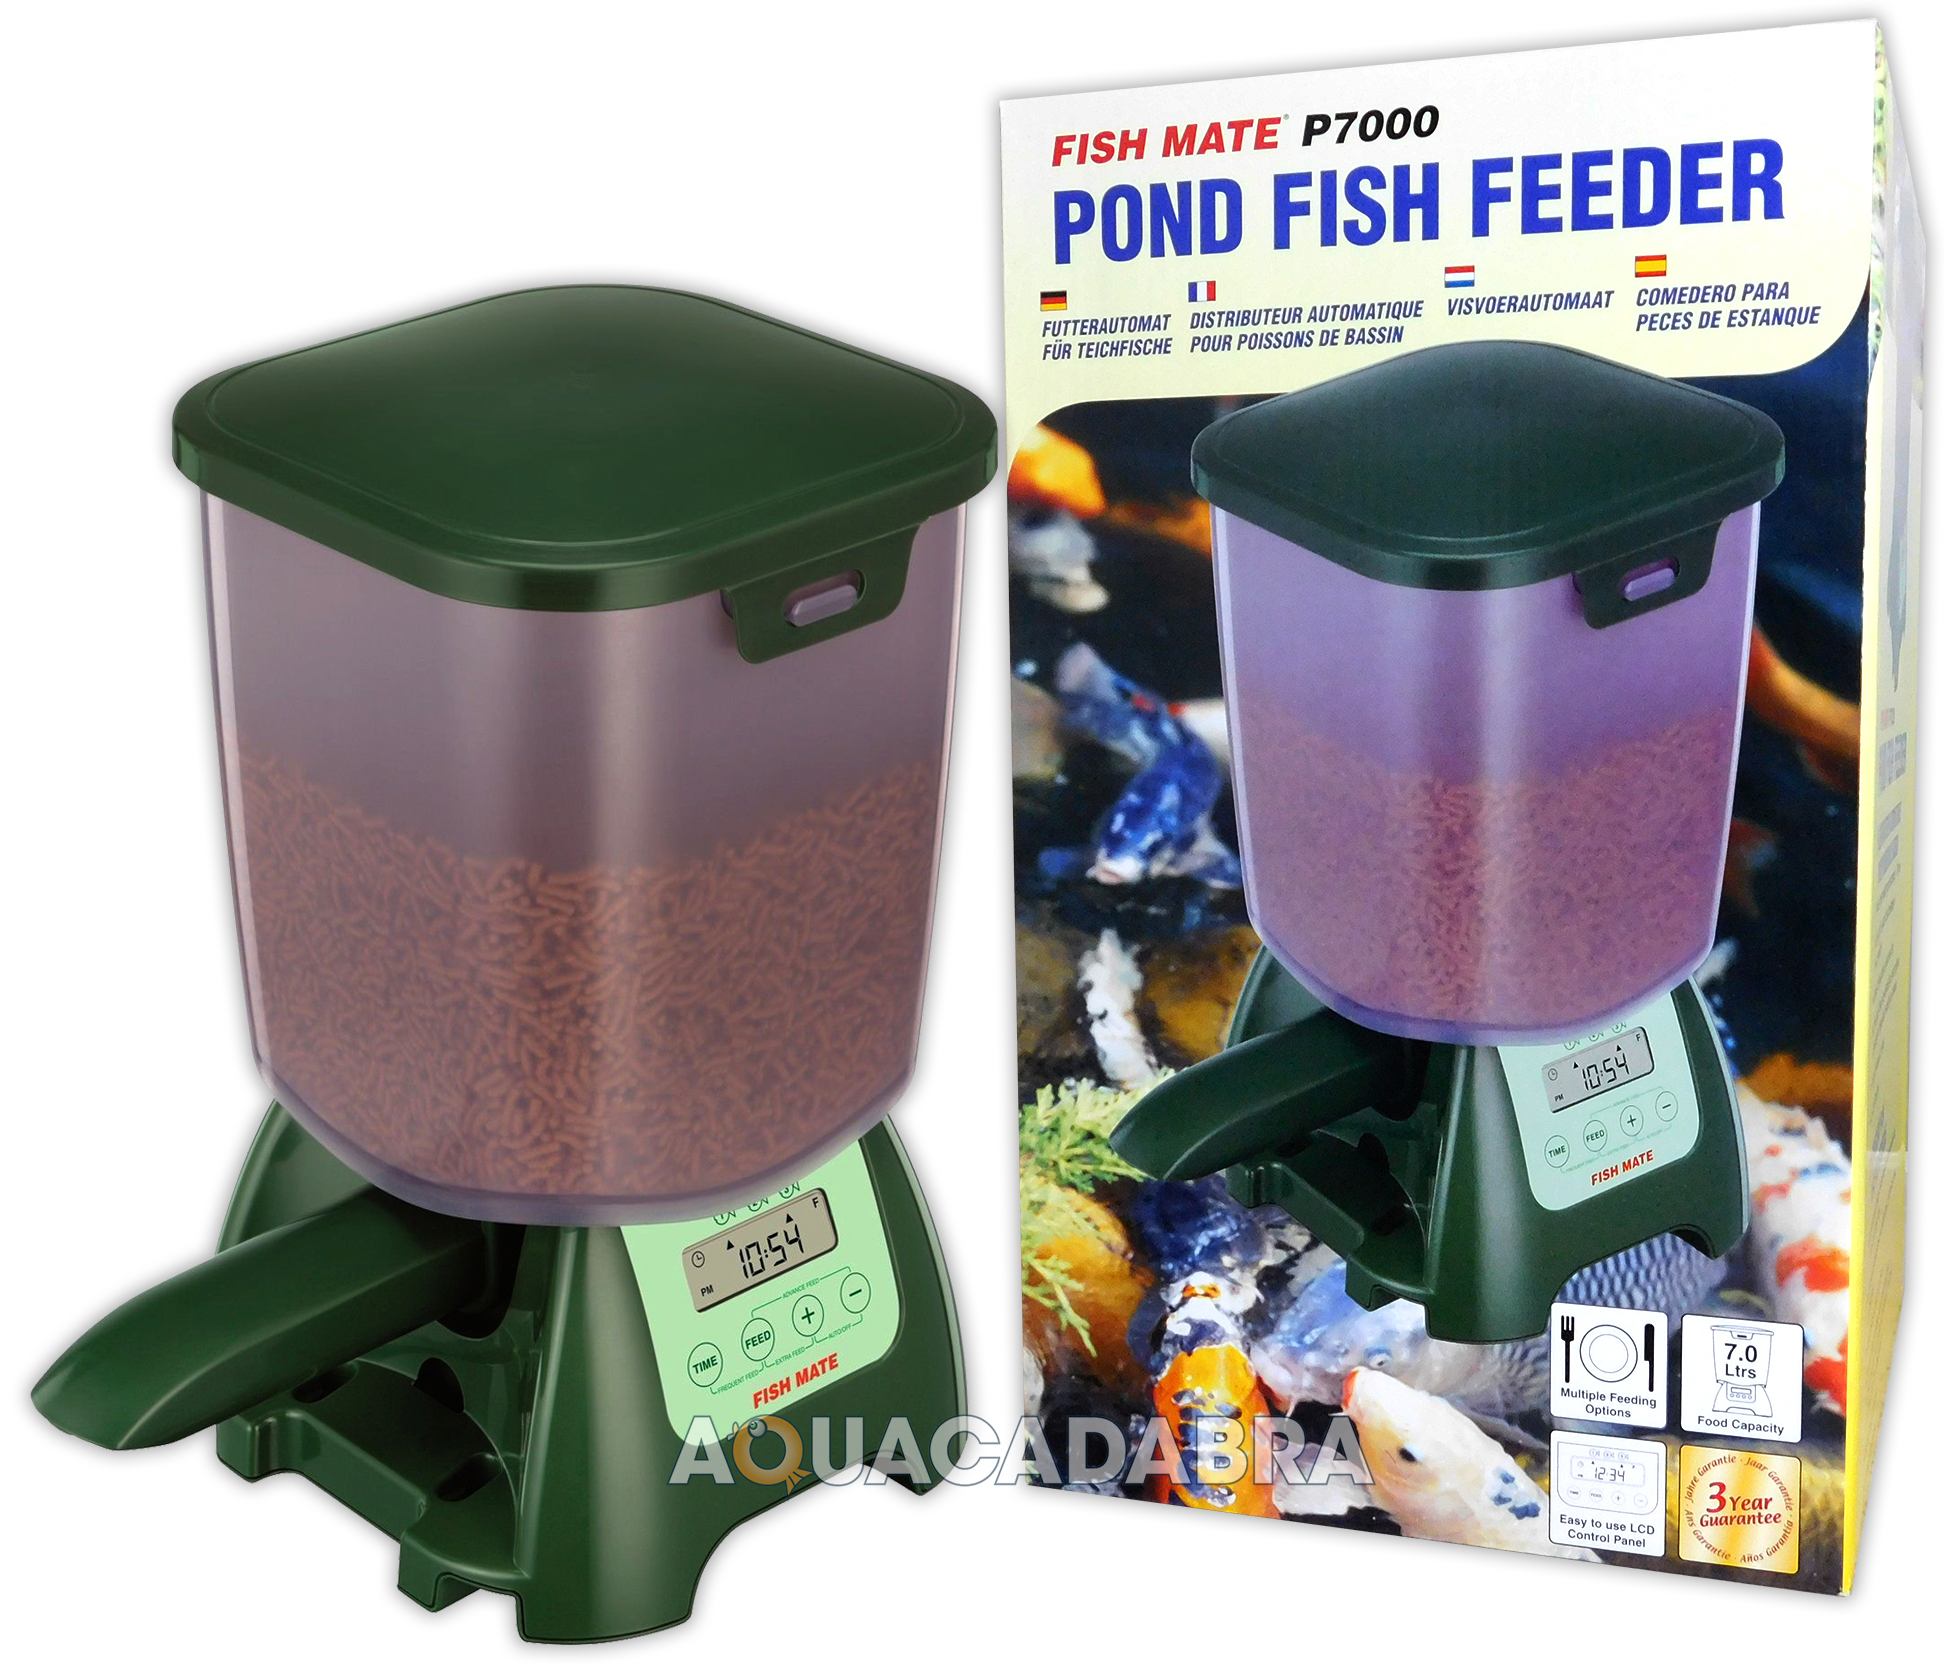 Fish mate p7000 auto koi pond fish food holiday feeder for Koi auto feeder